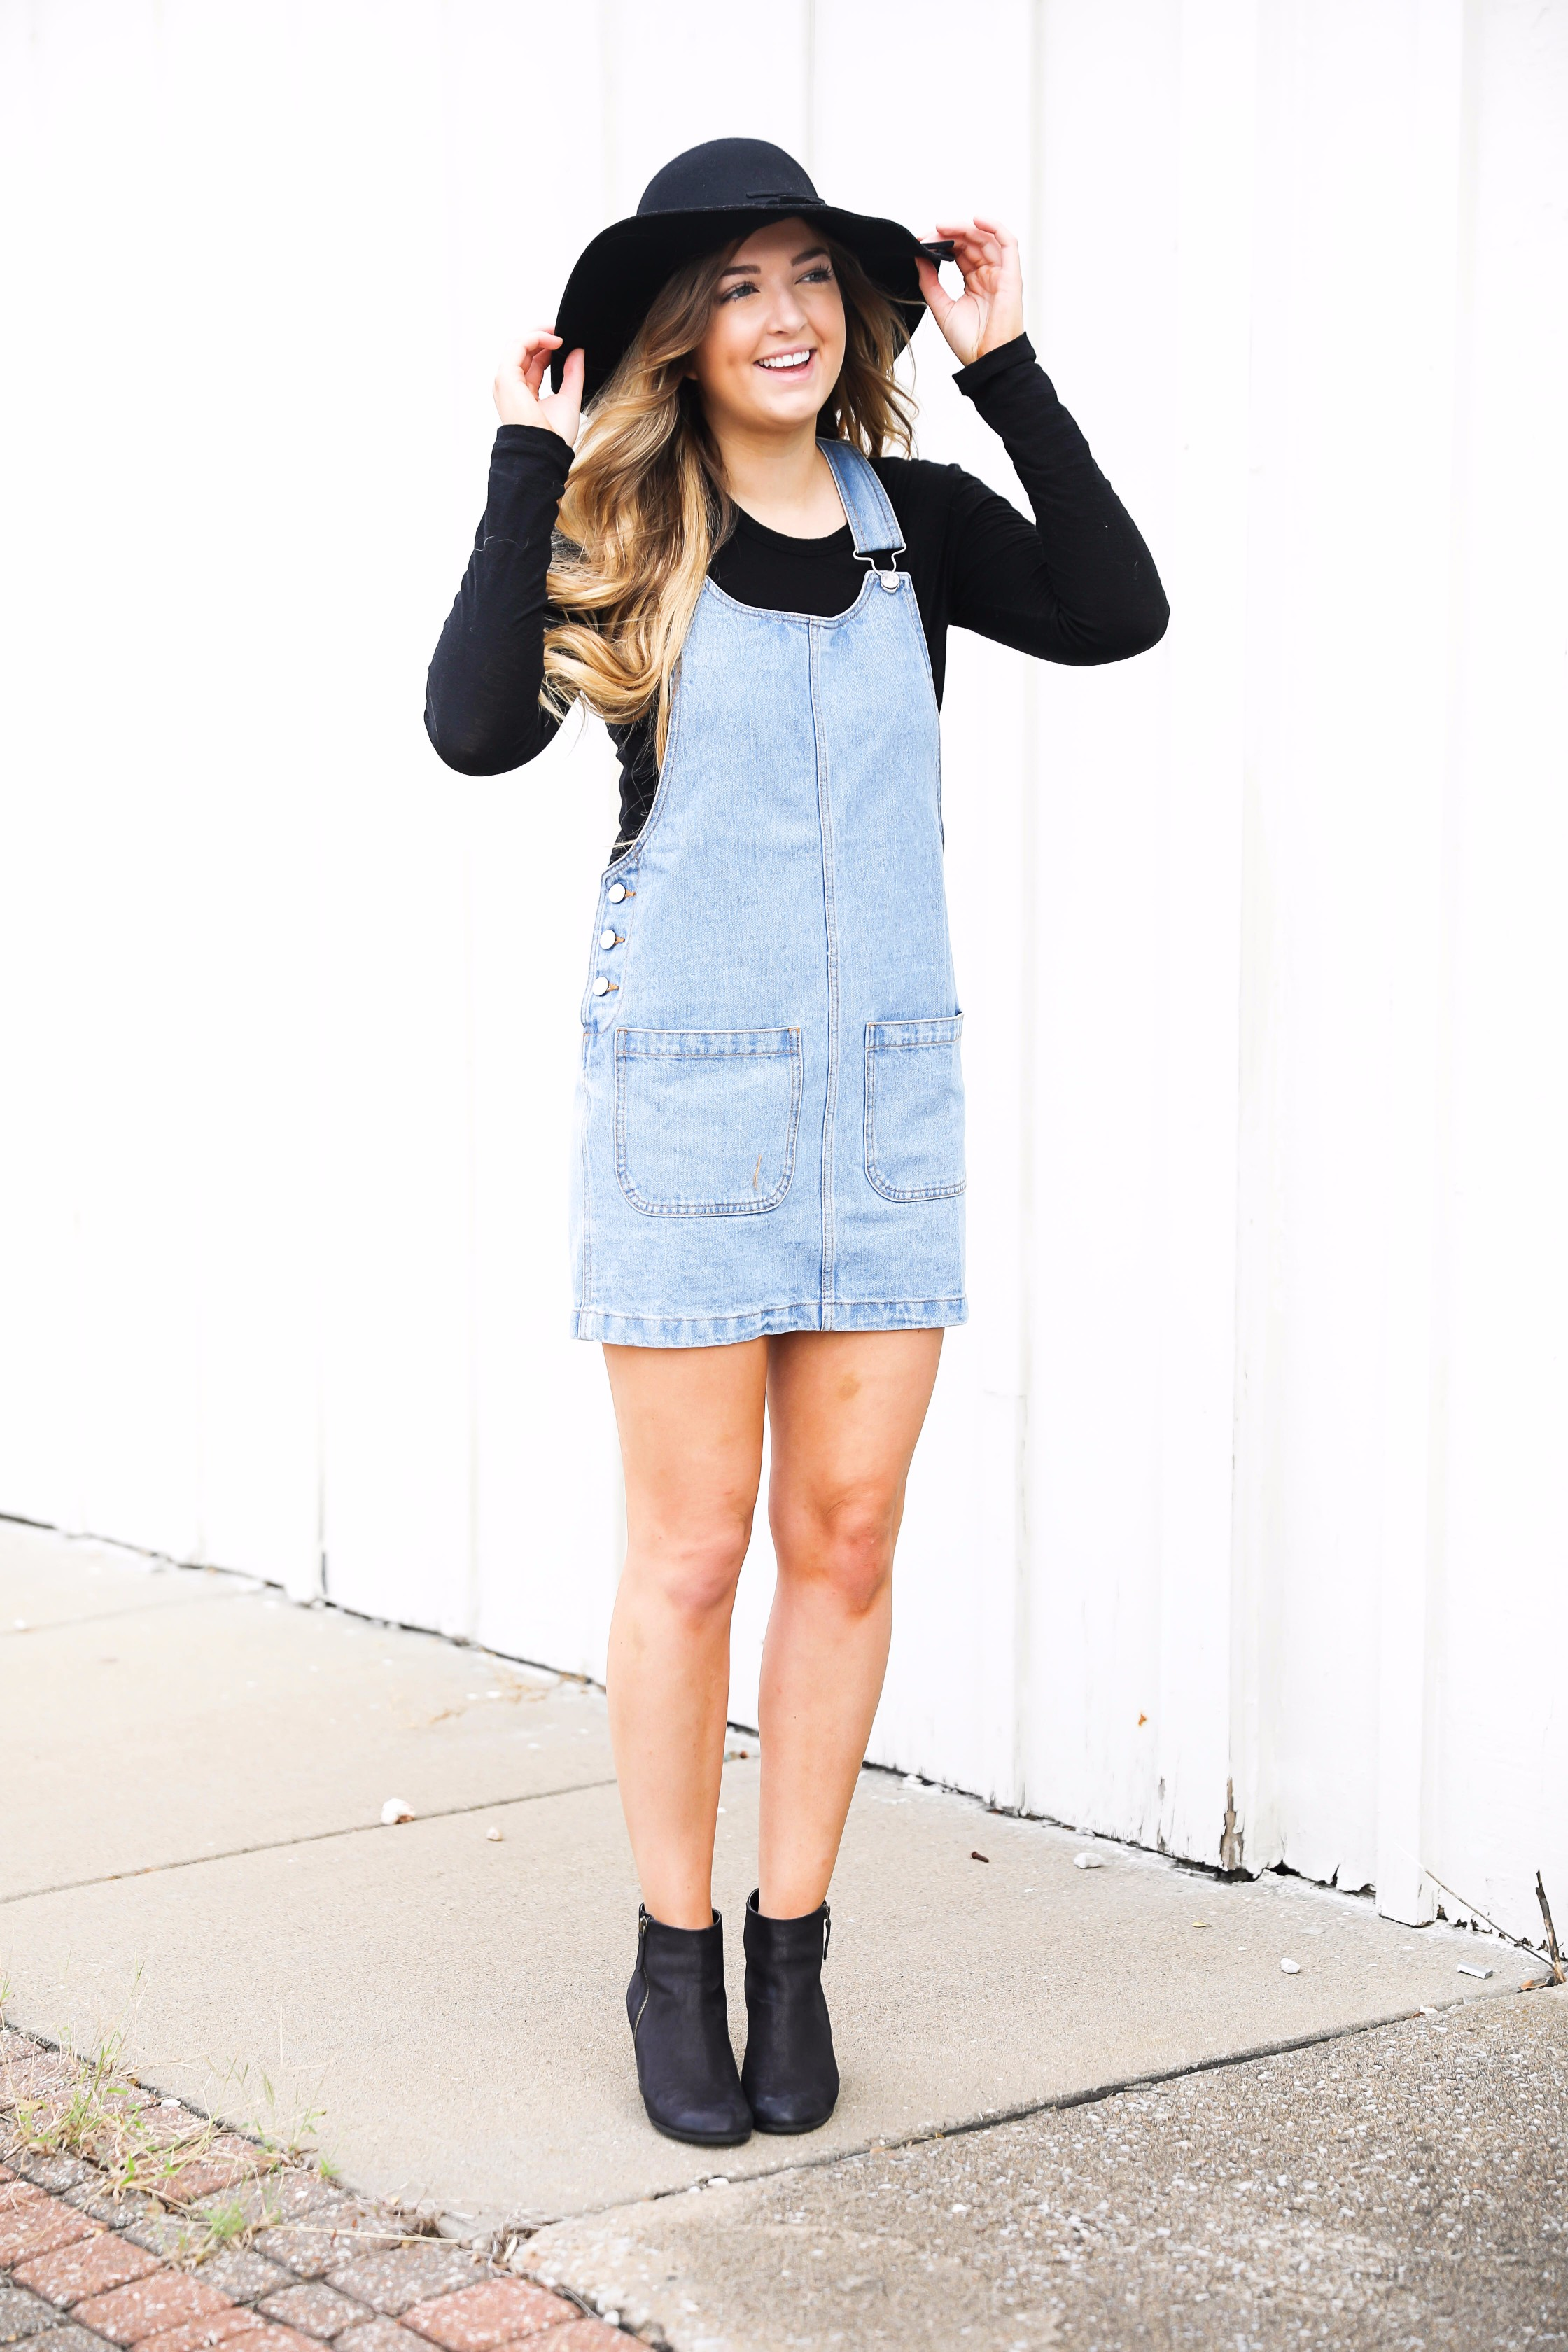 Fall outfit idea! Overall dress and black floppy hat and black booties! I love this look! Find the details on fashion blog daily dose of charm by lauren lindmark